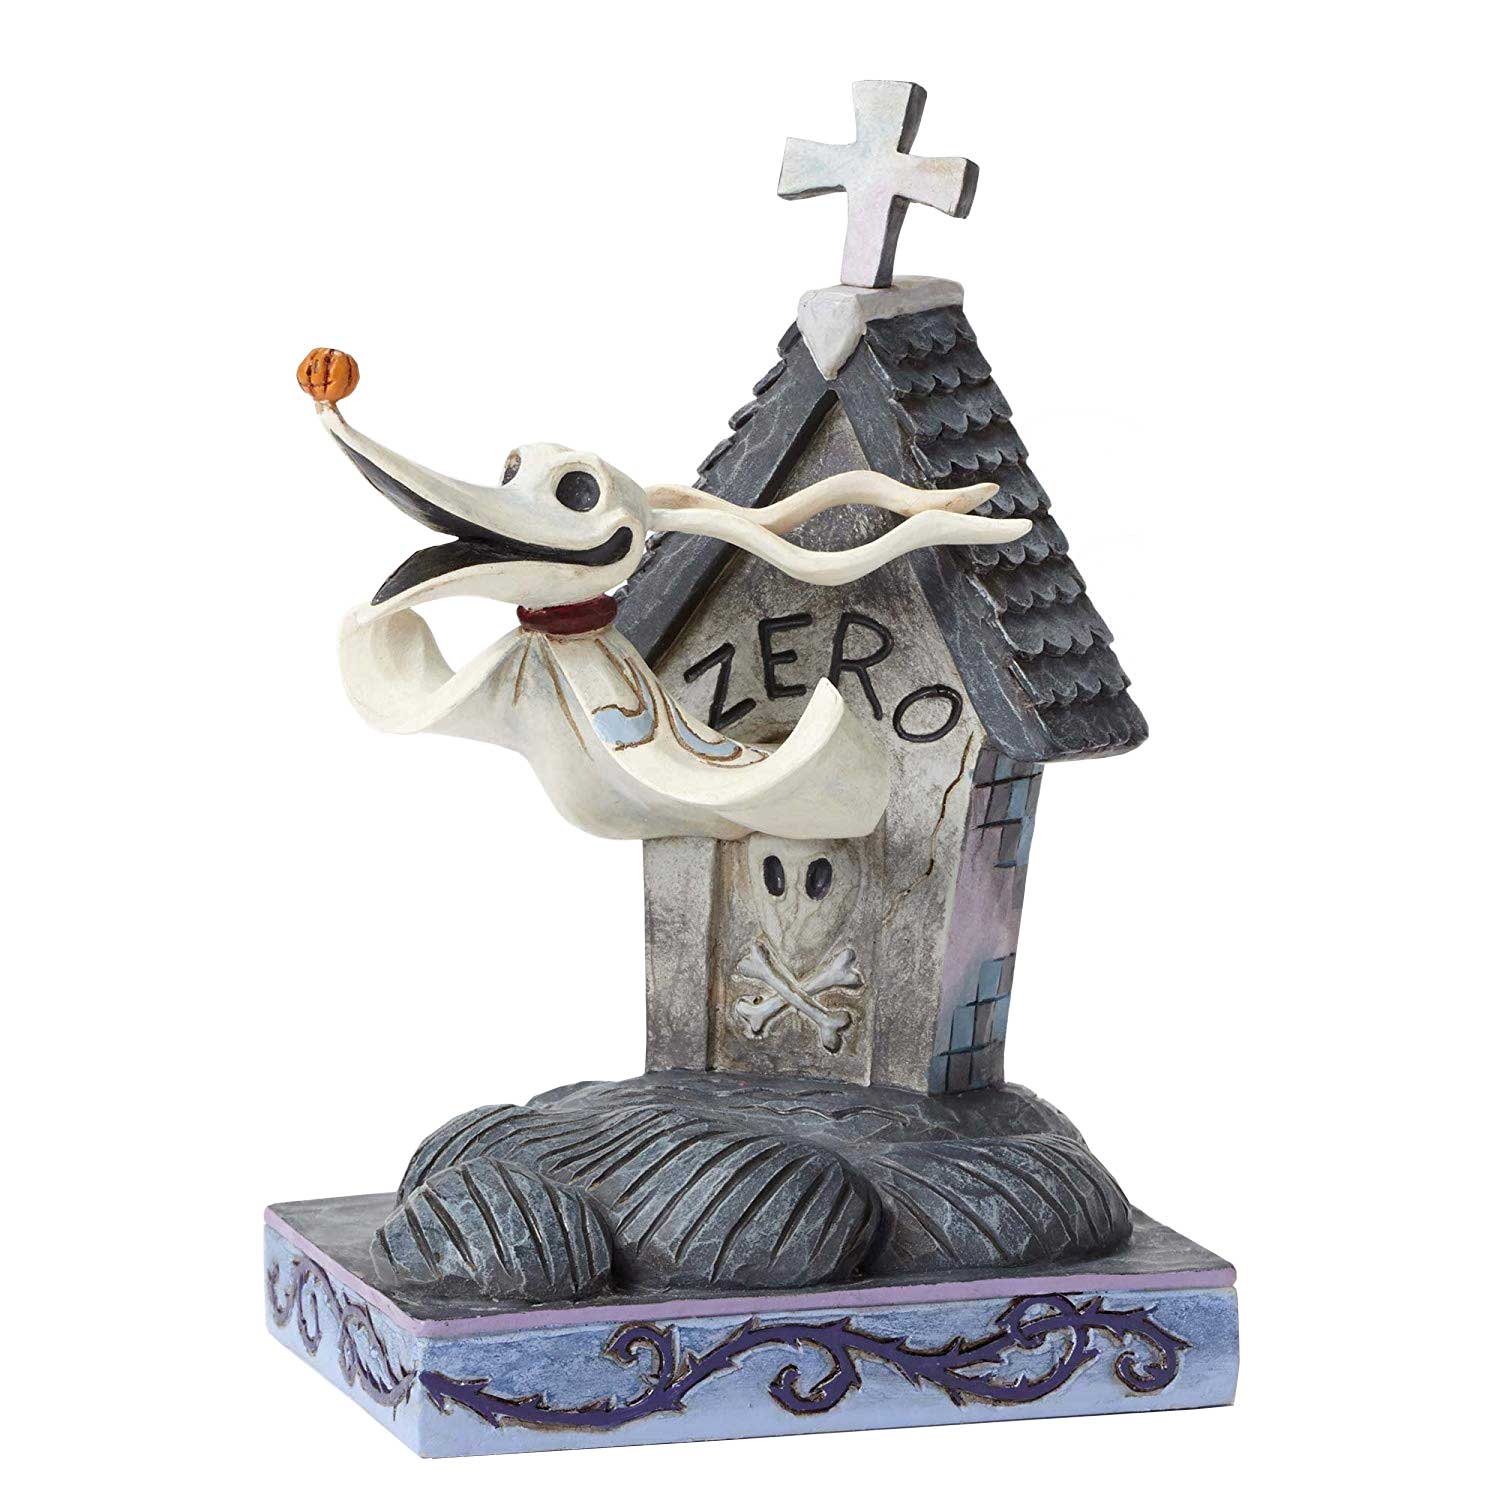 af8302f279aea Details about Nightmare Before Christmas Floating Friend Figurine